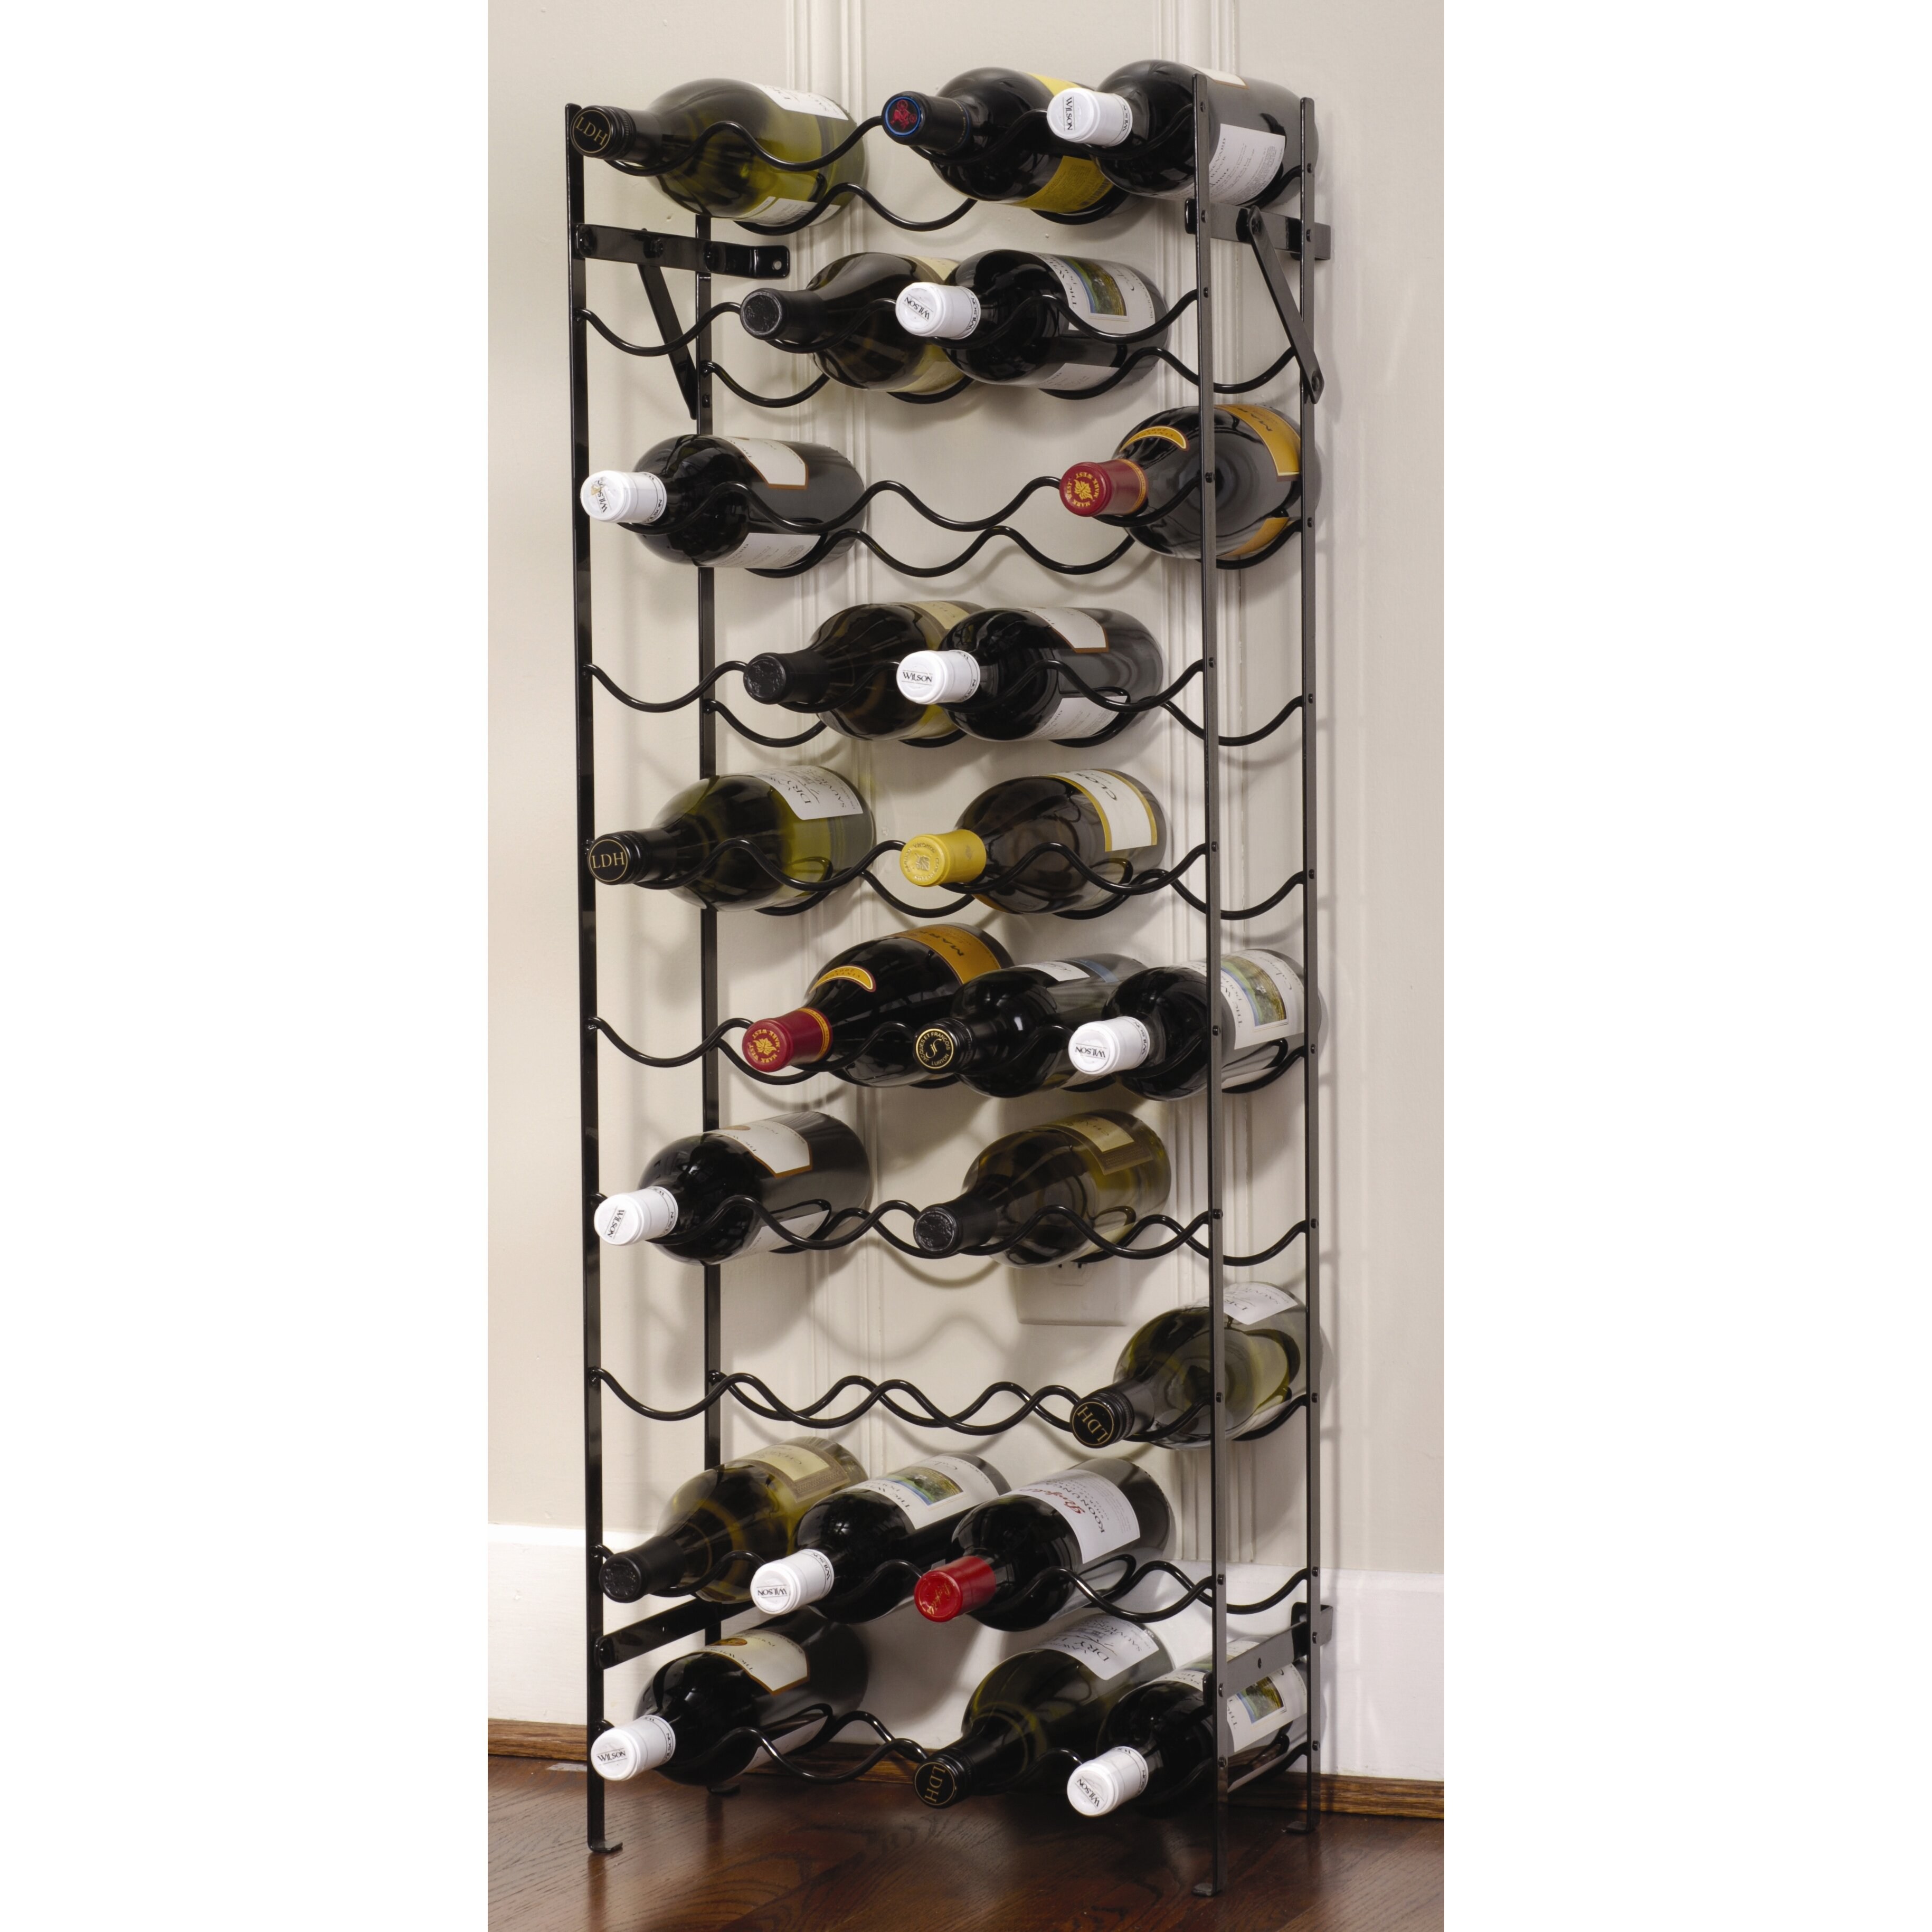 Brayden studio cooksey 40 bottle floor wine rack reviews for Floor wine rack